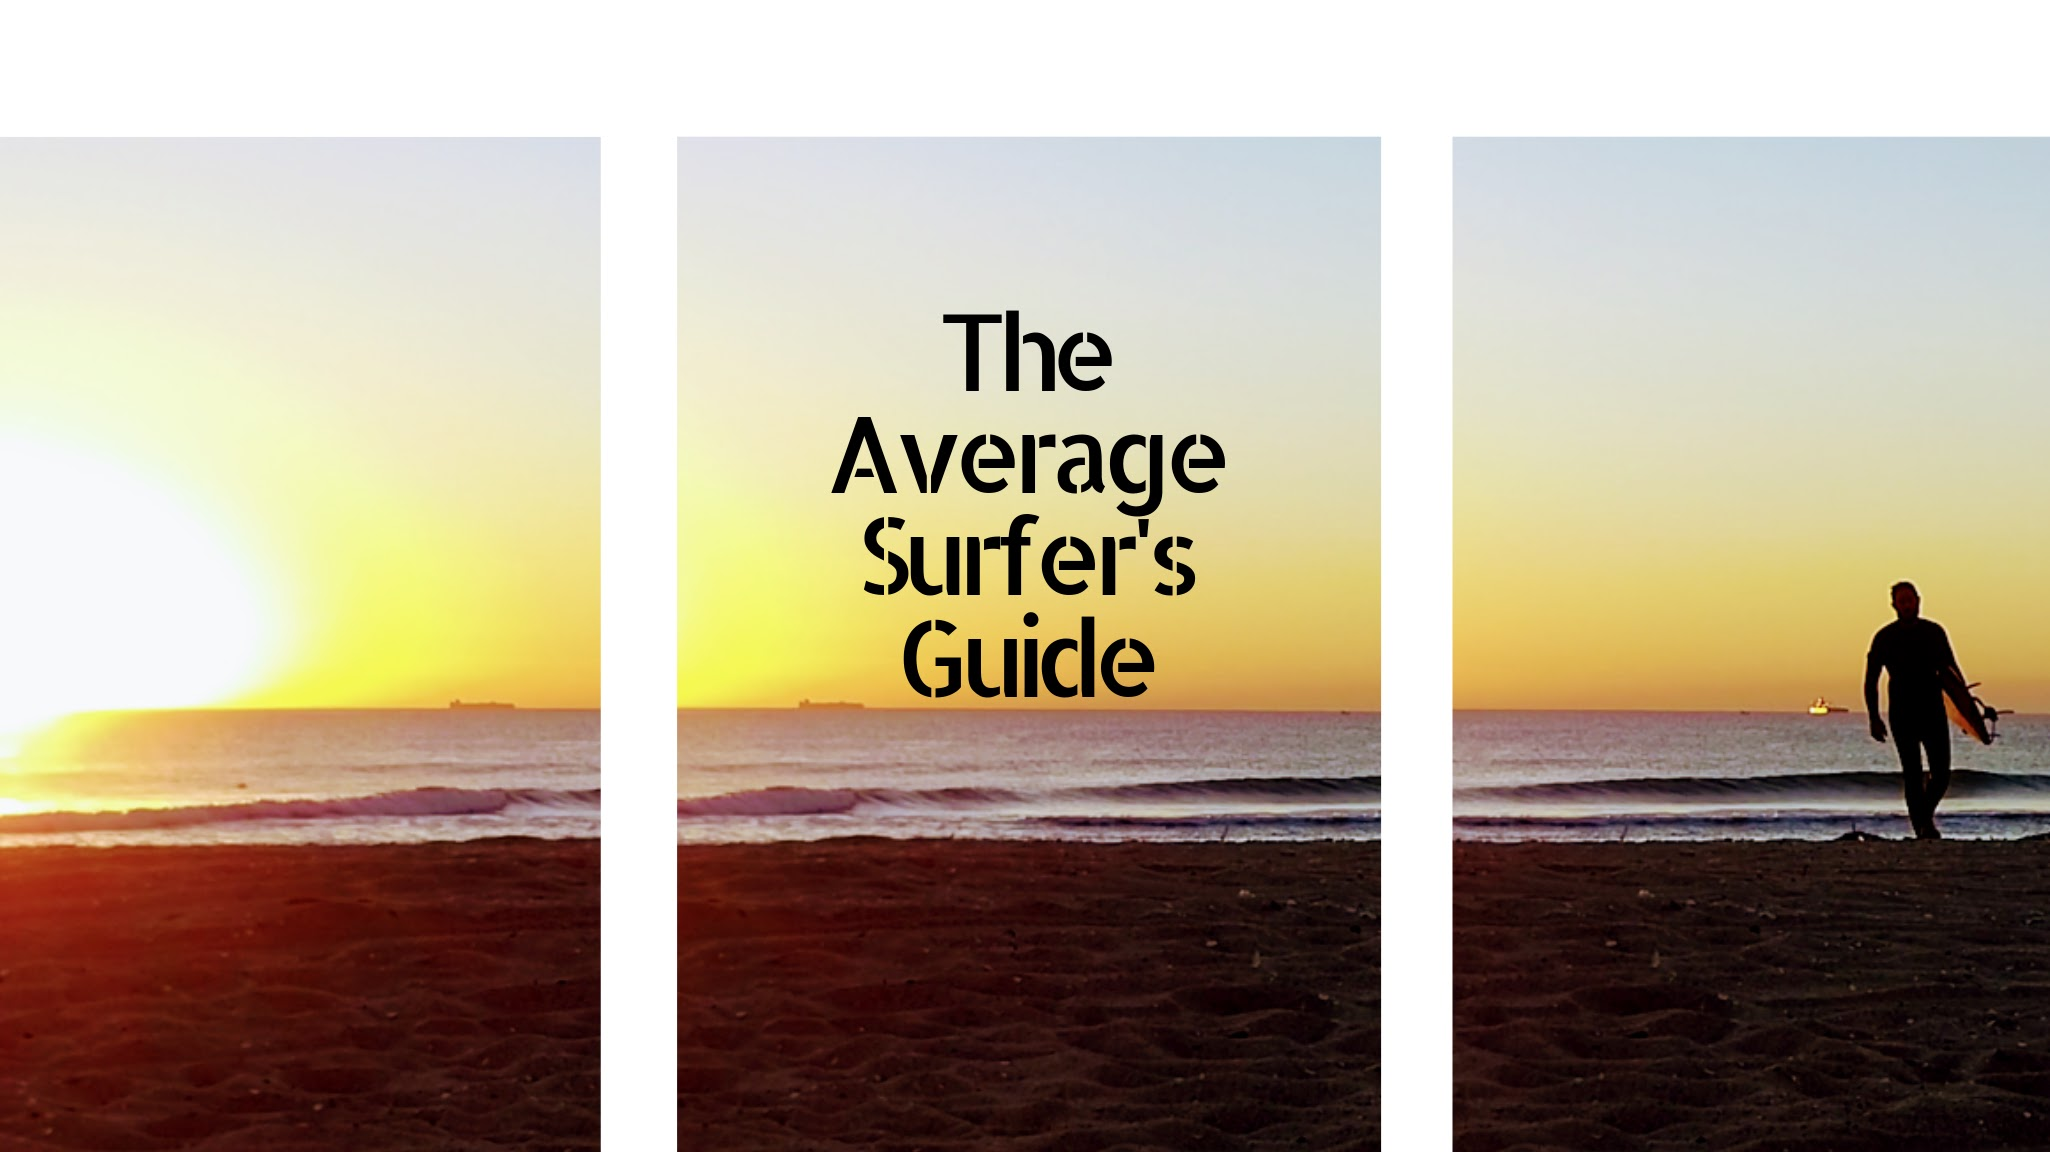 The Average Surfer's Guide